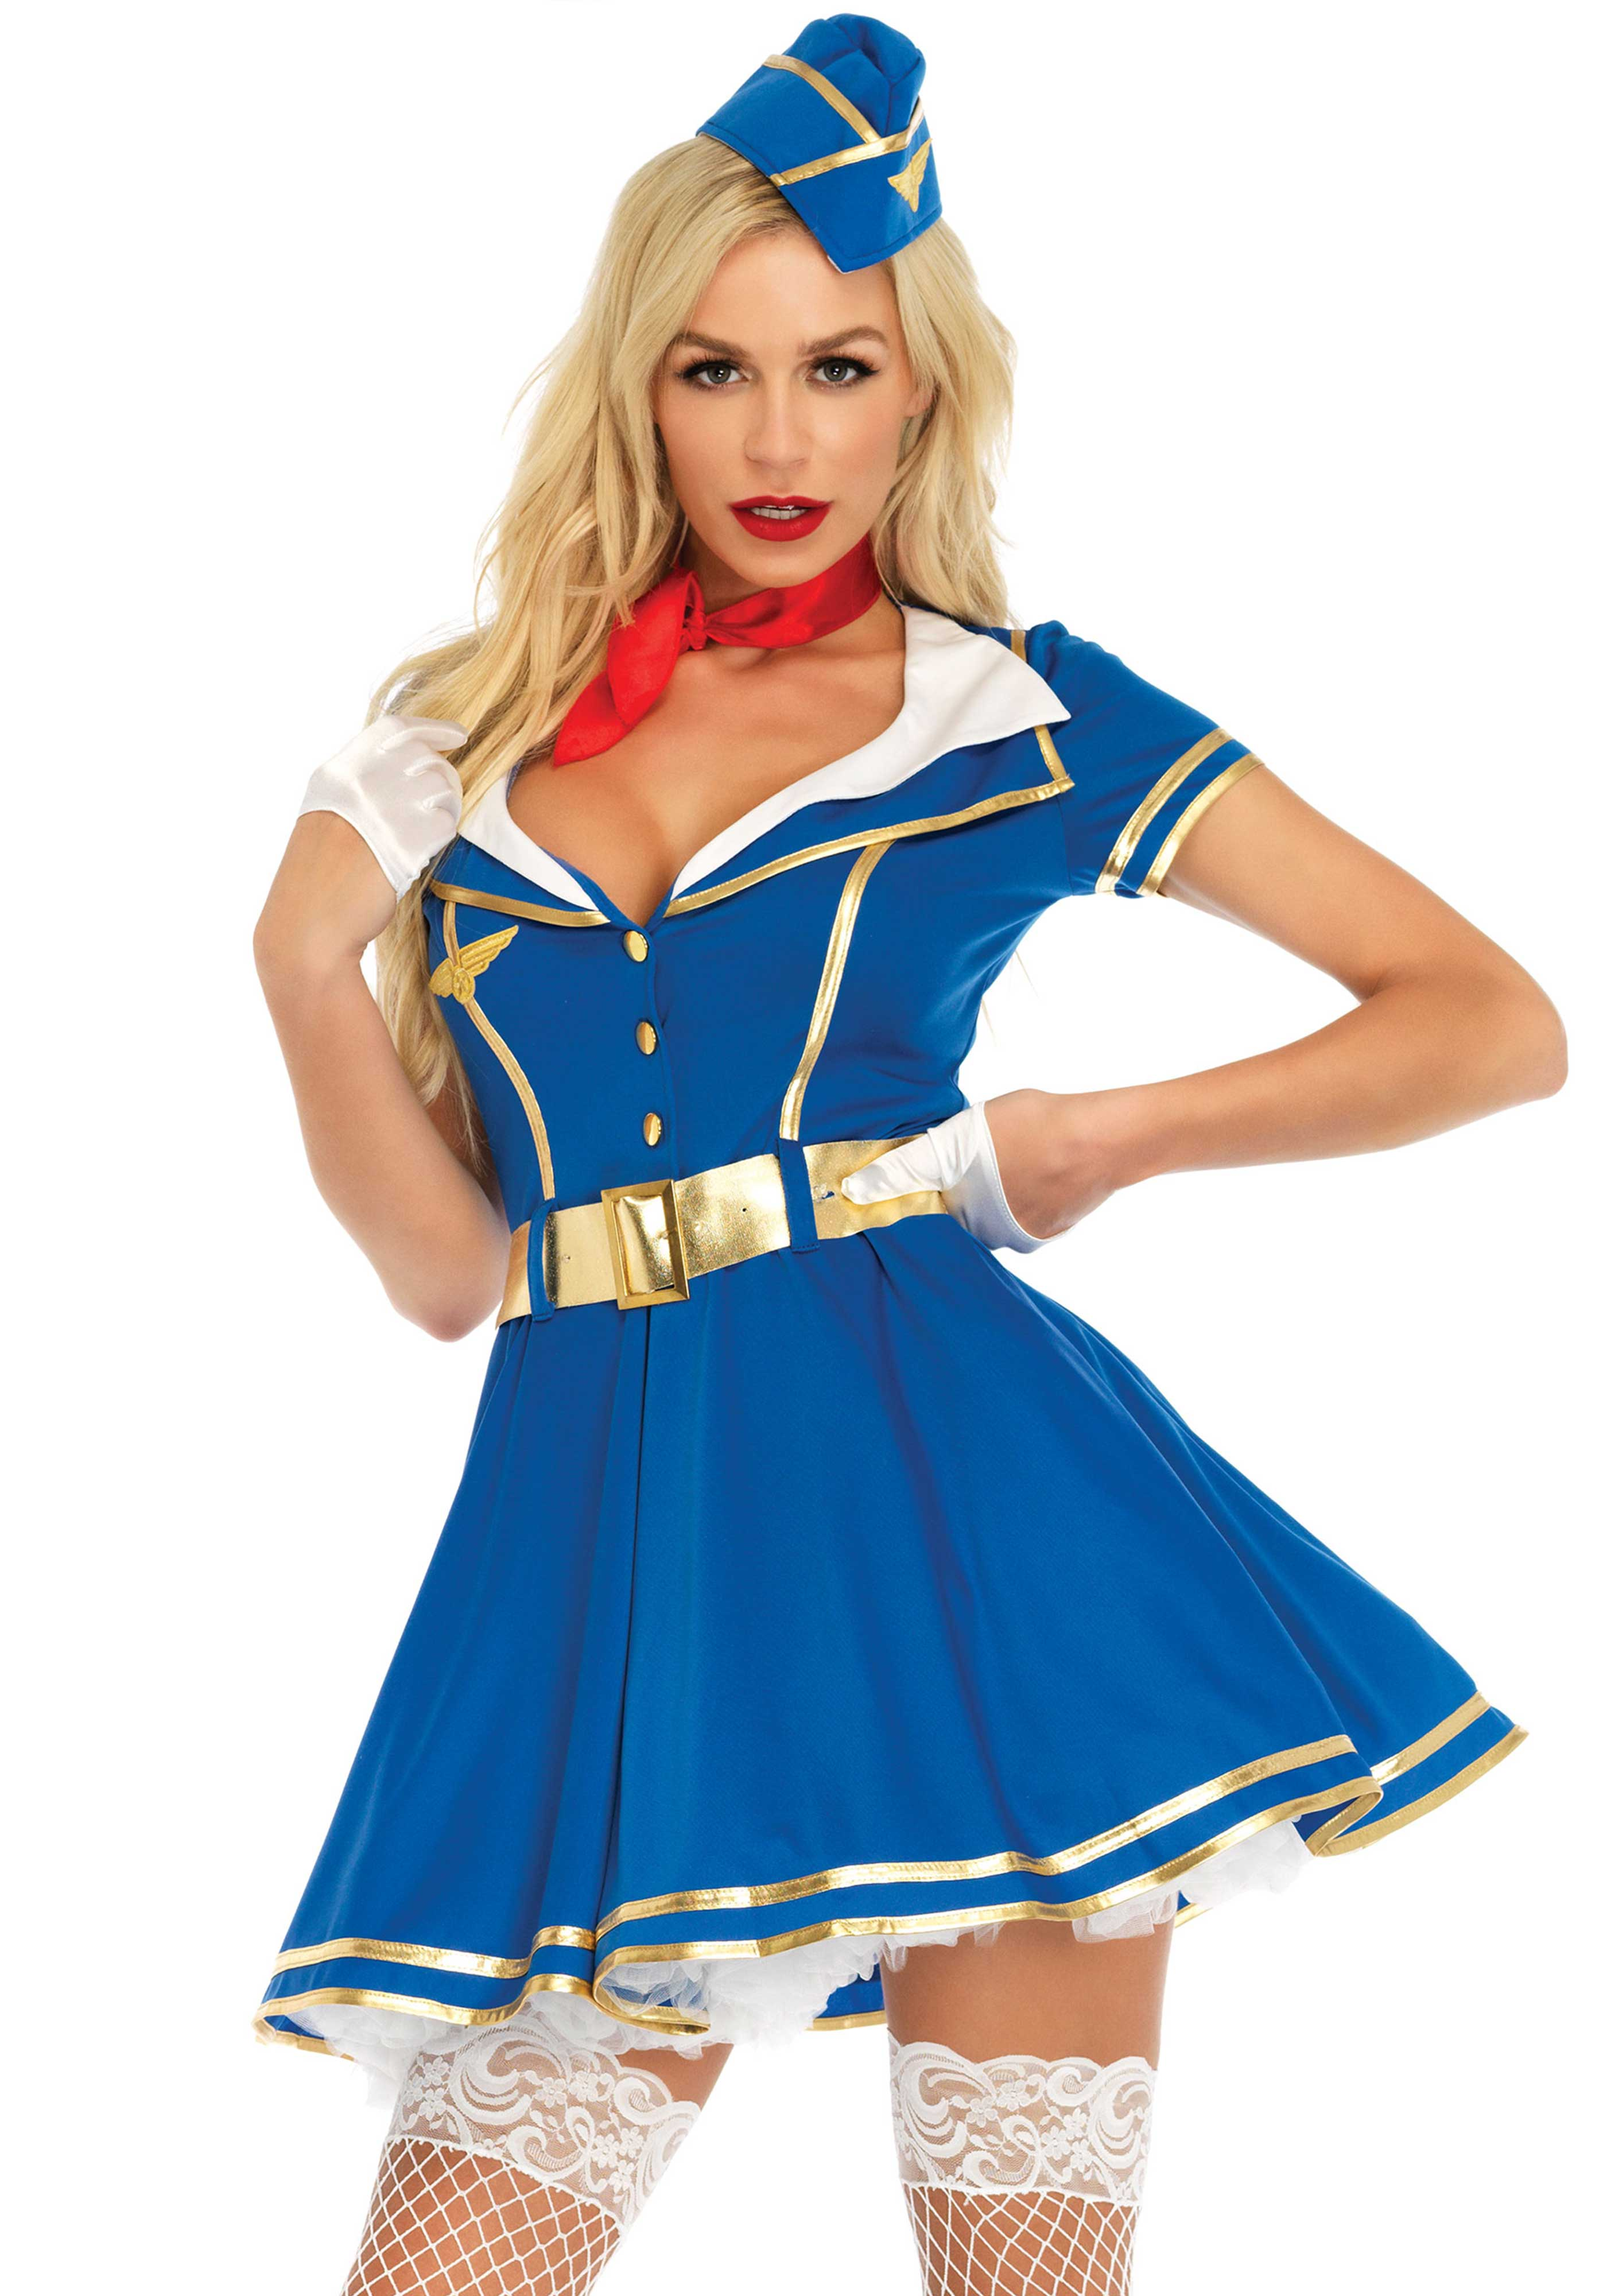 4PC. Sky High Hottie costume, includes retro gold trimmed dress with badge accent, belt, neck scarf, and matching hat.